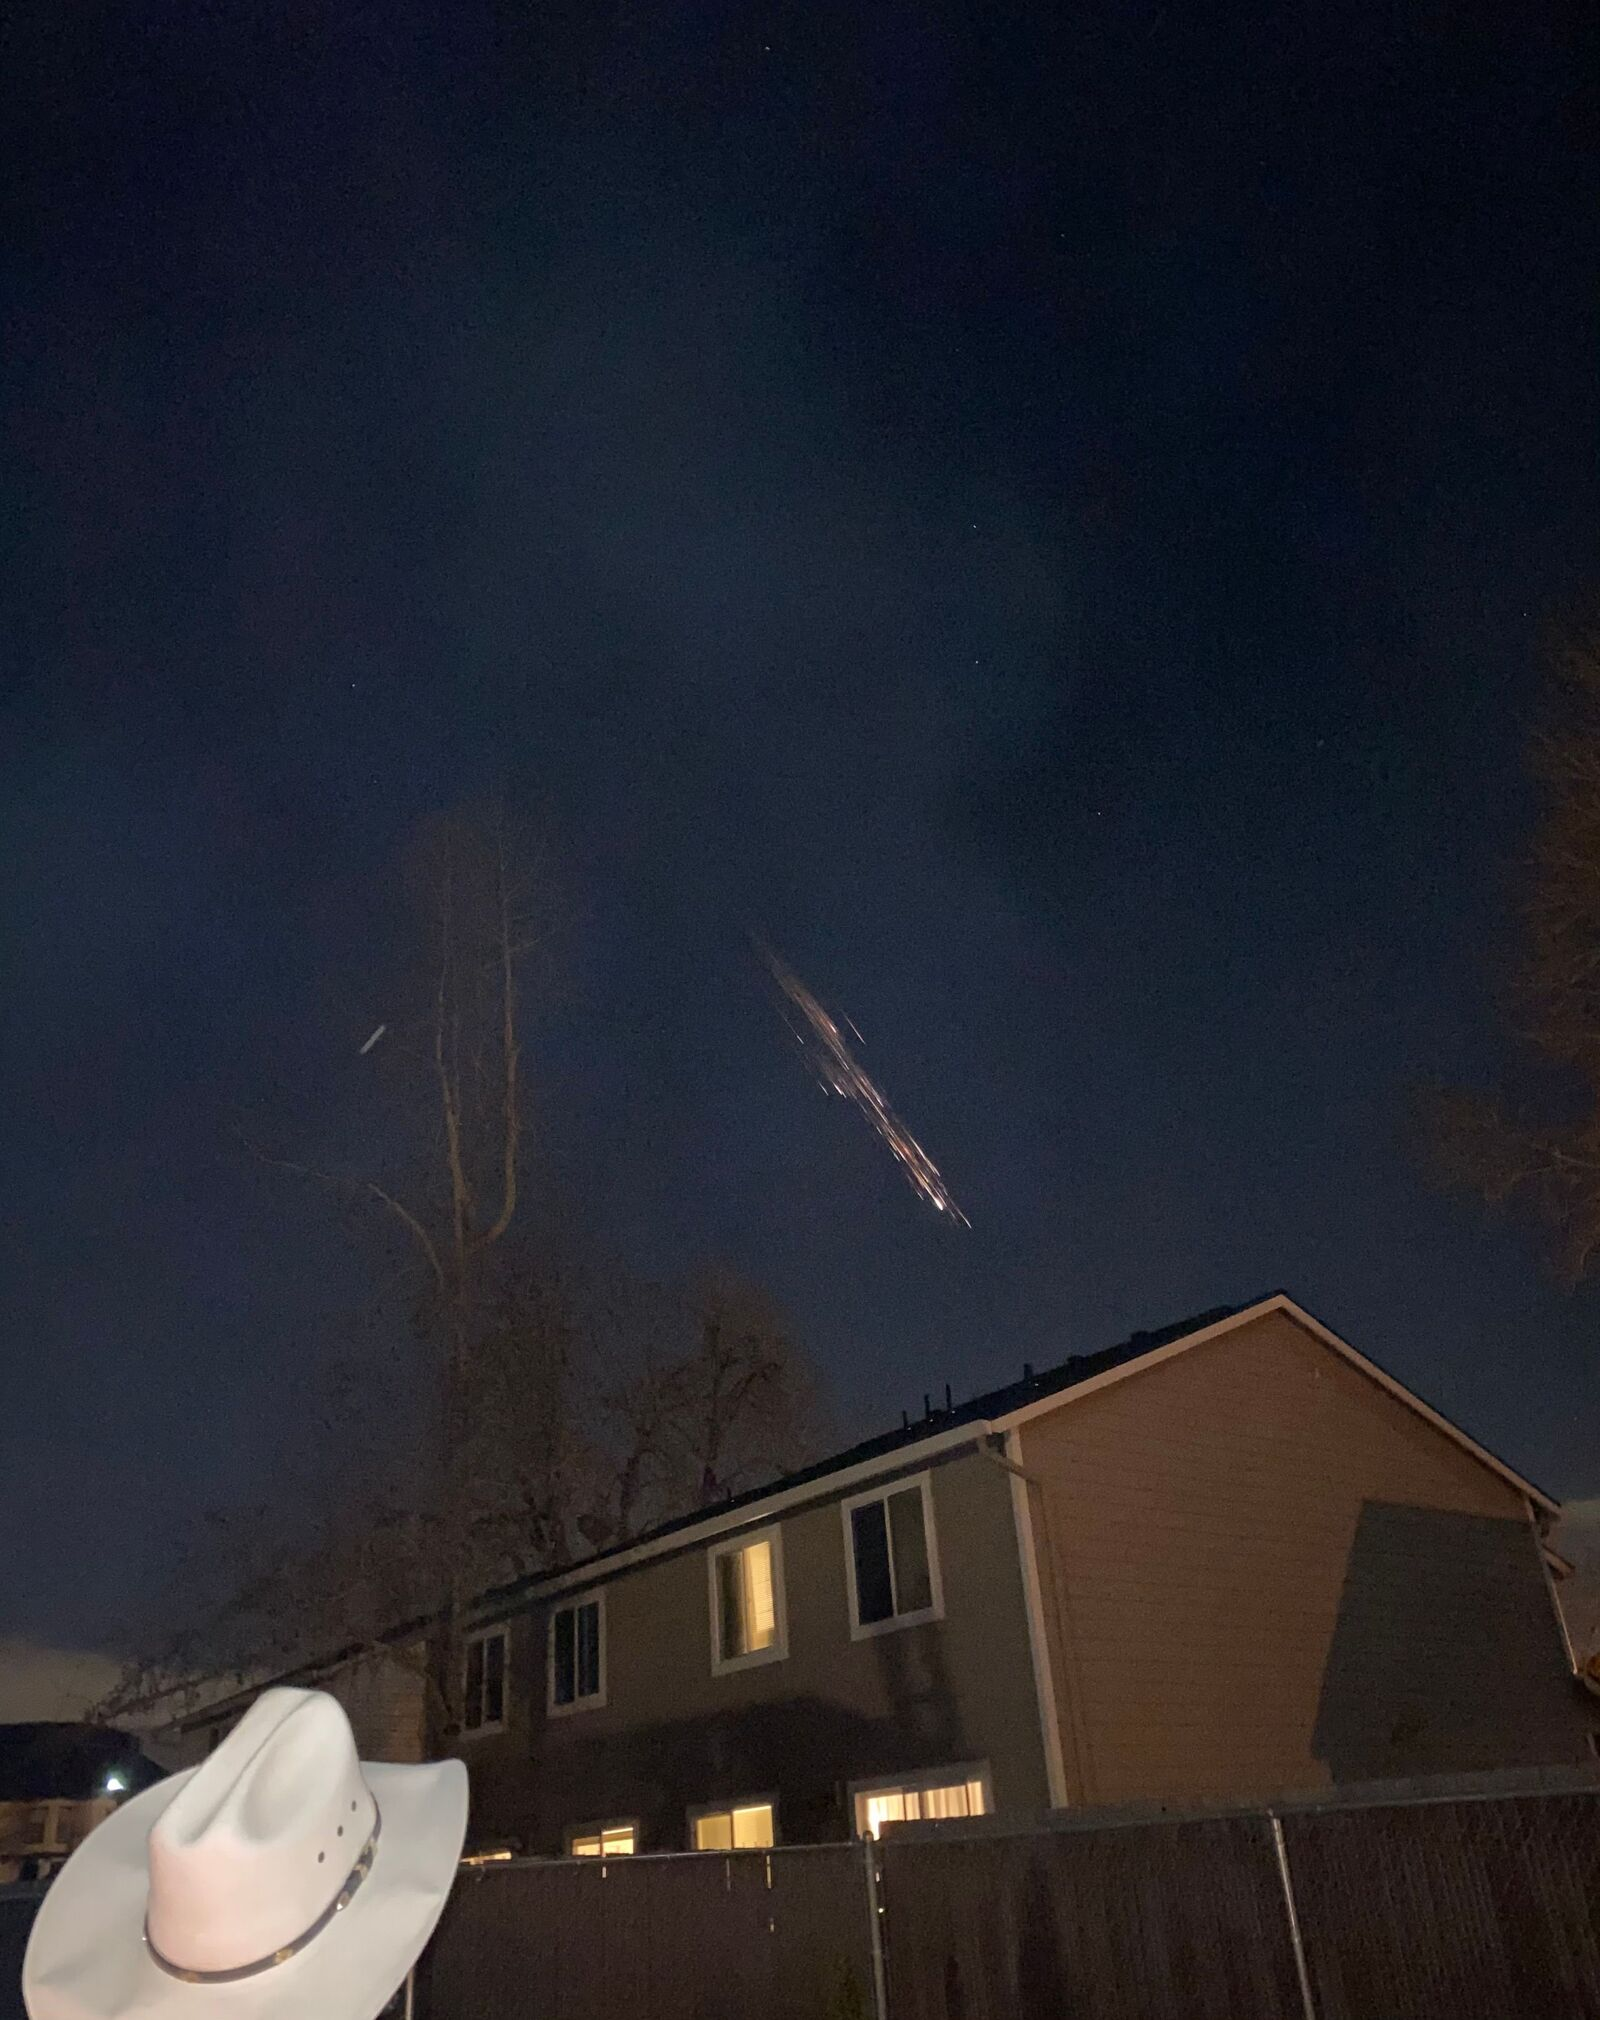 We heard a sonic boom about 5 minutes later( Photo: Aspen George via Chime In)<br>Did you see it? Send your photos & video to KATU.com/ChimeIn!